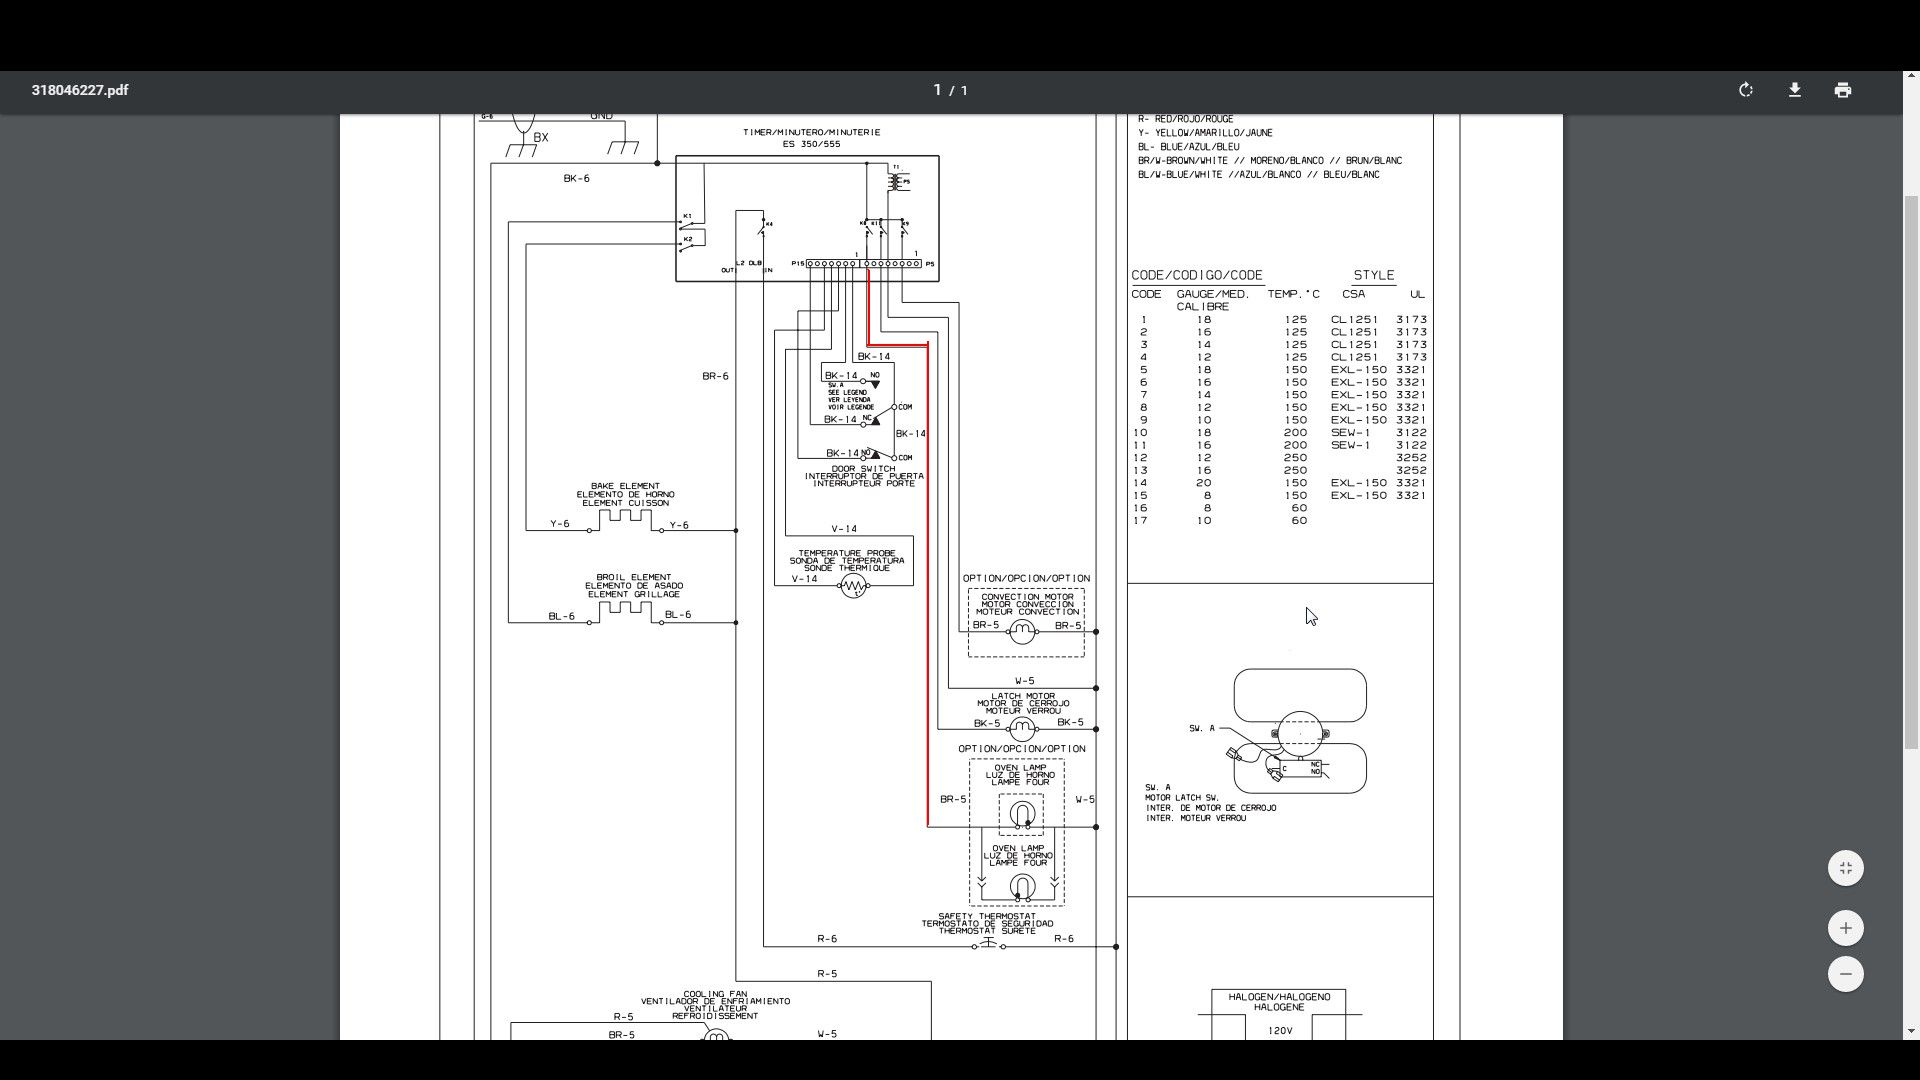 I have a Kenmore wall oven. mod # 790.47789400. the light is ... Kenmore Electric Range Wiring Diagram on